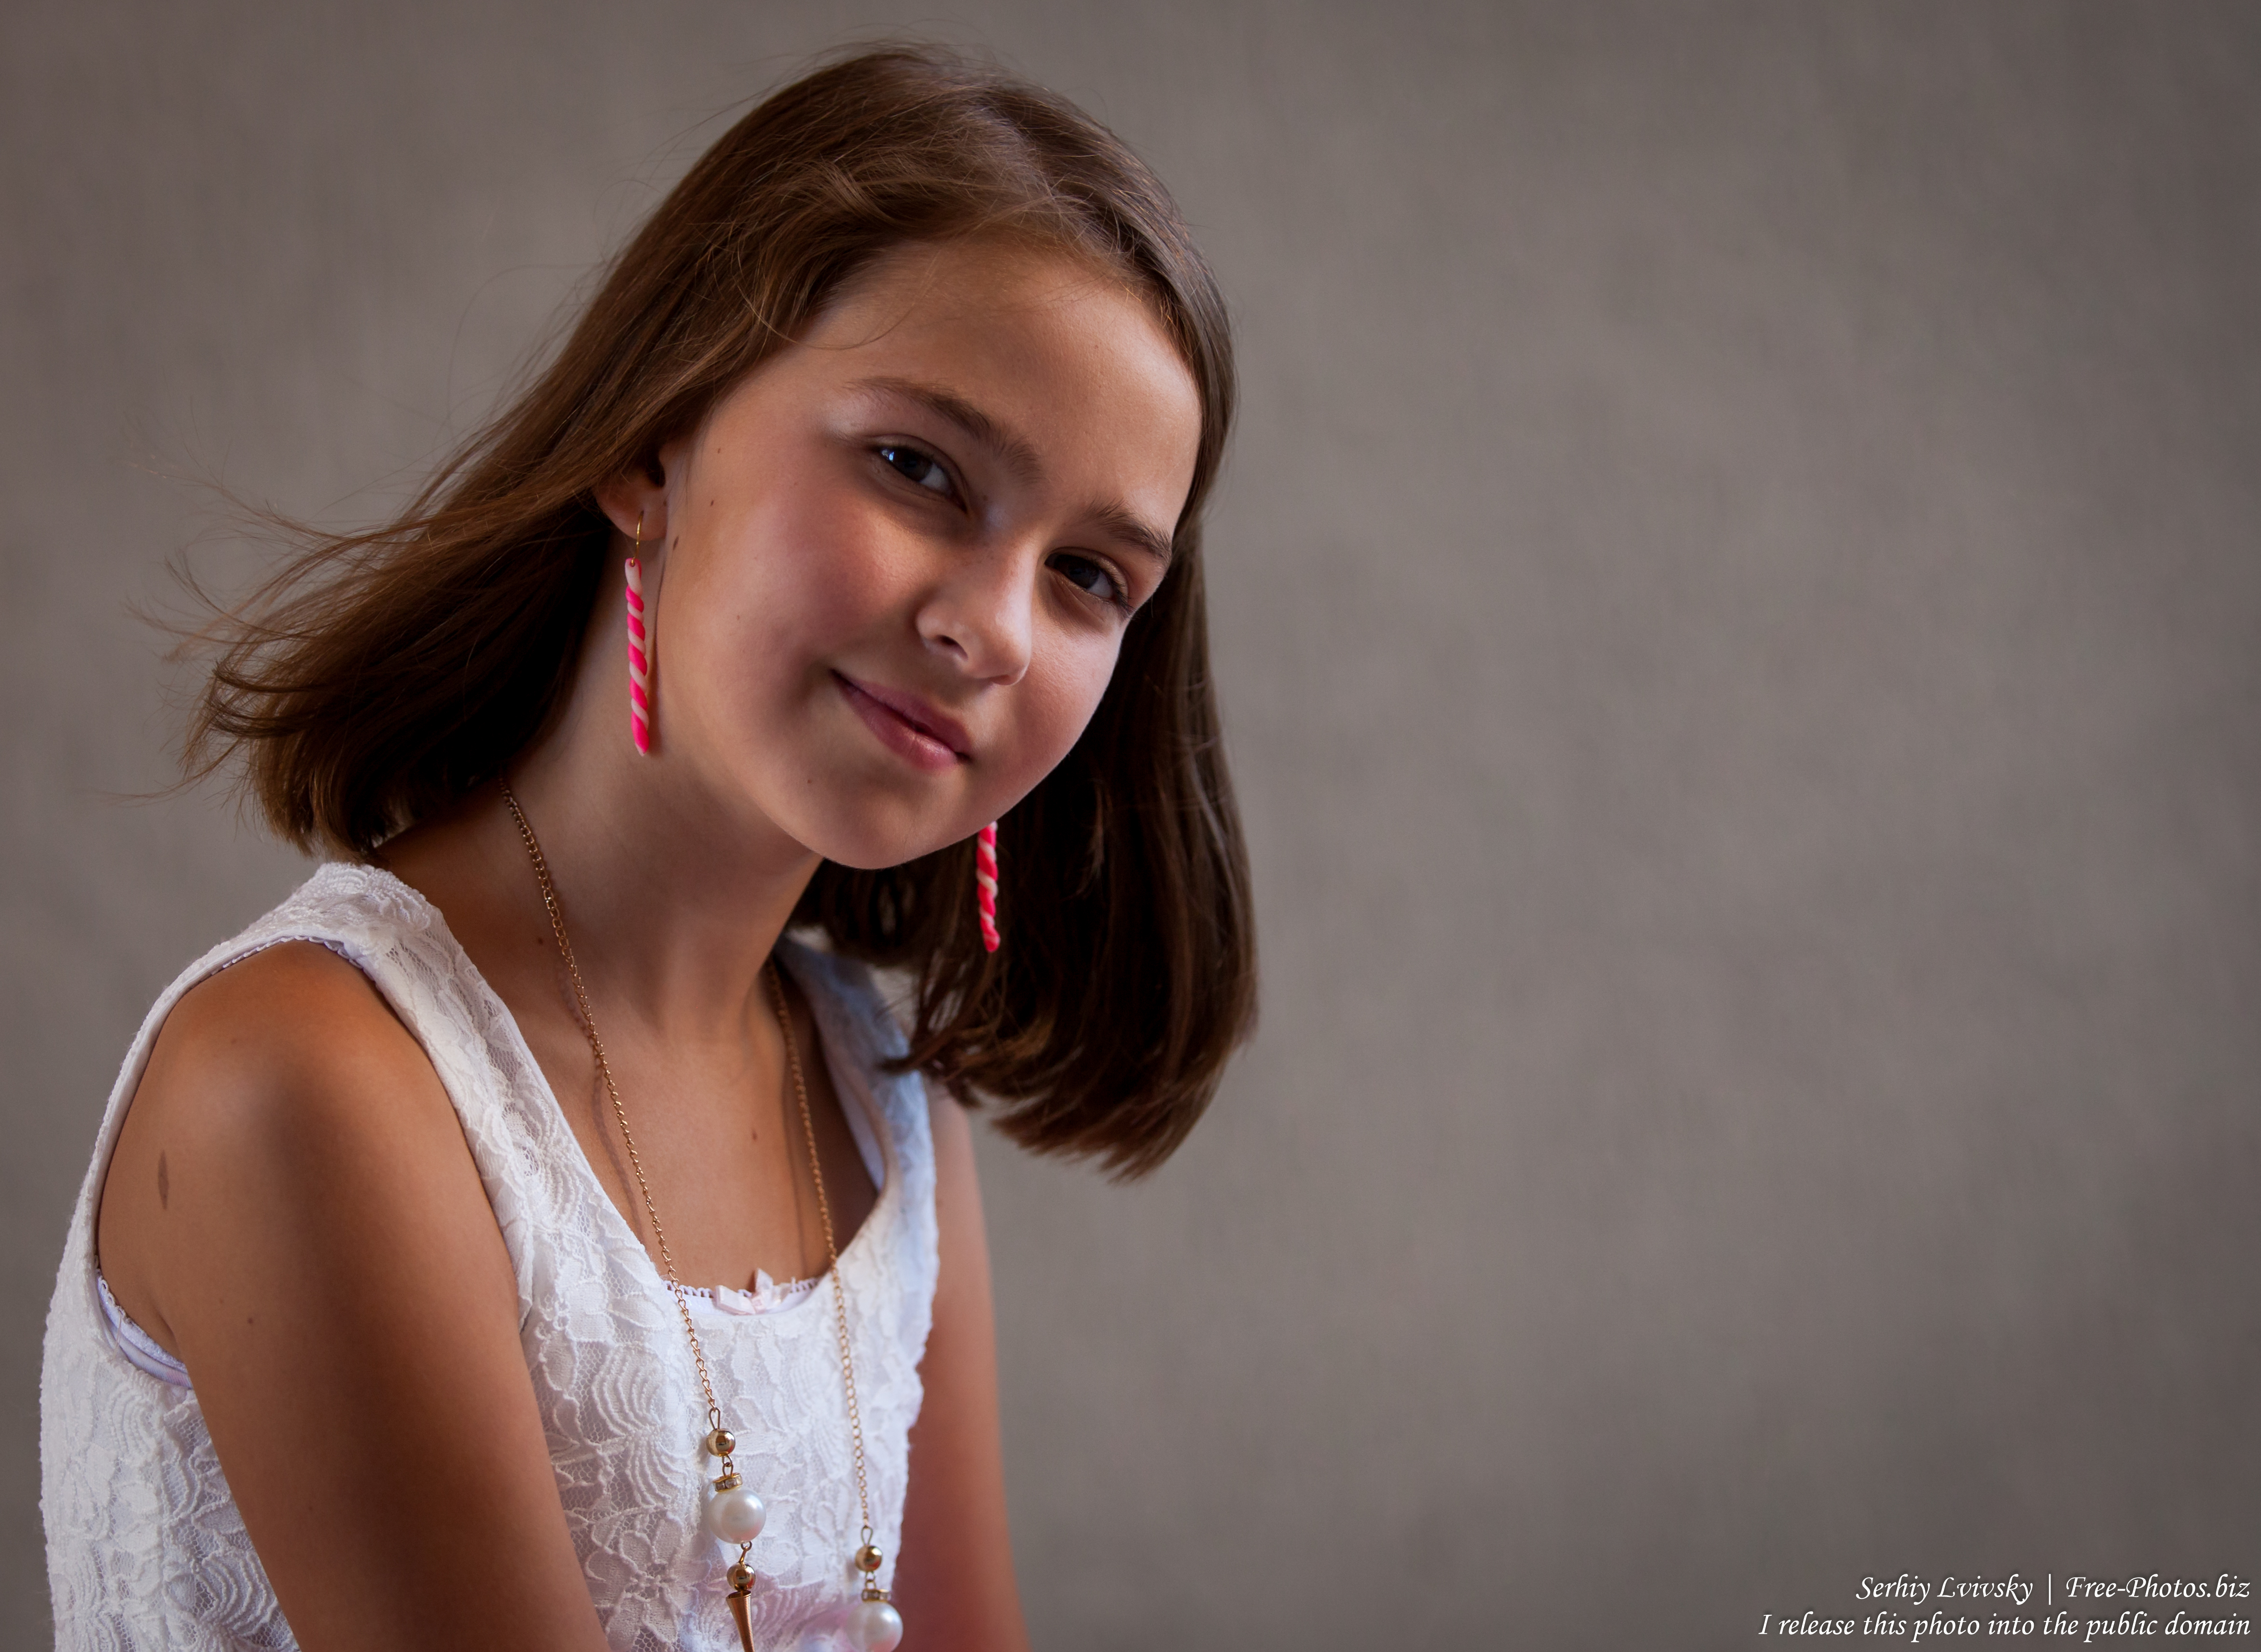 a 12-year-old girl photographed in July 2015 by Serhiy Lvivsky, picture 6